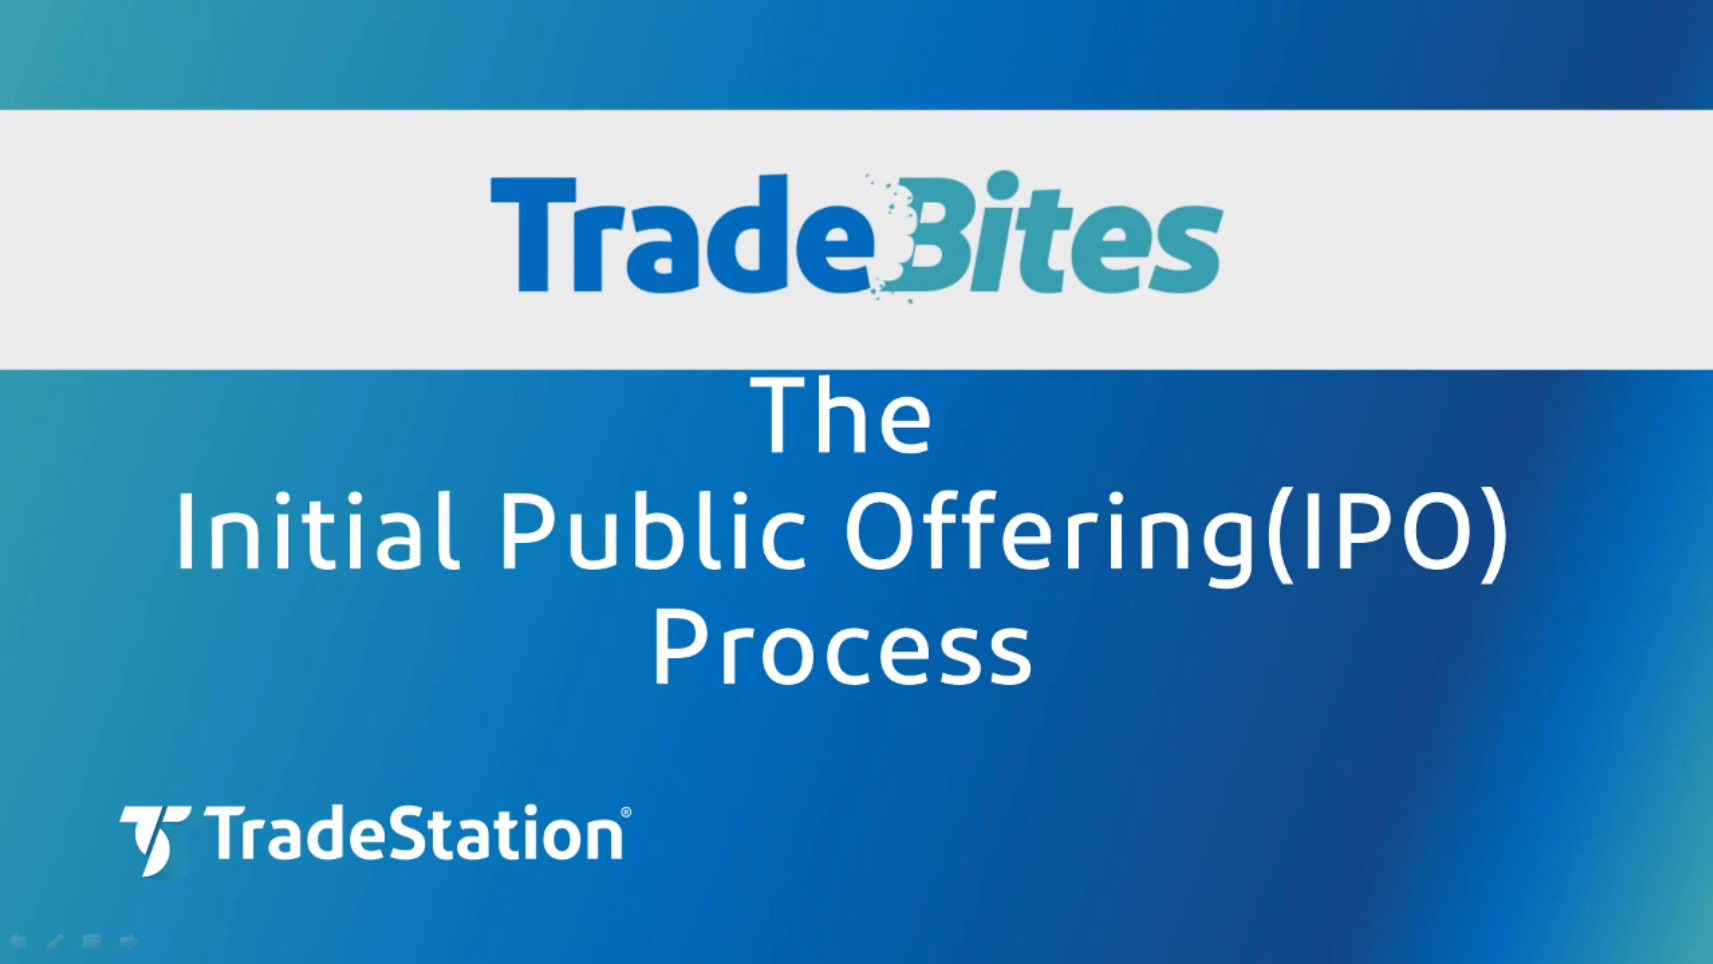 The Initial Public Offering Process